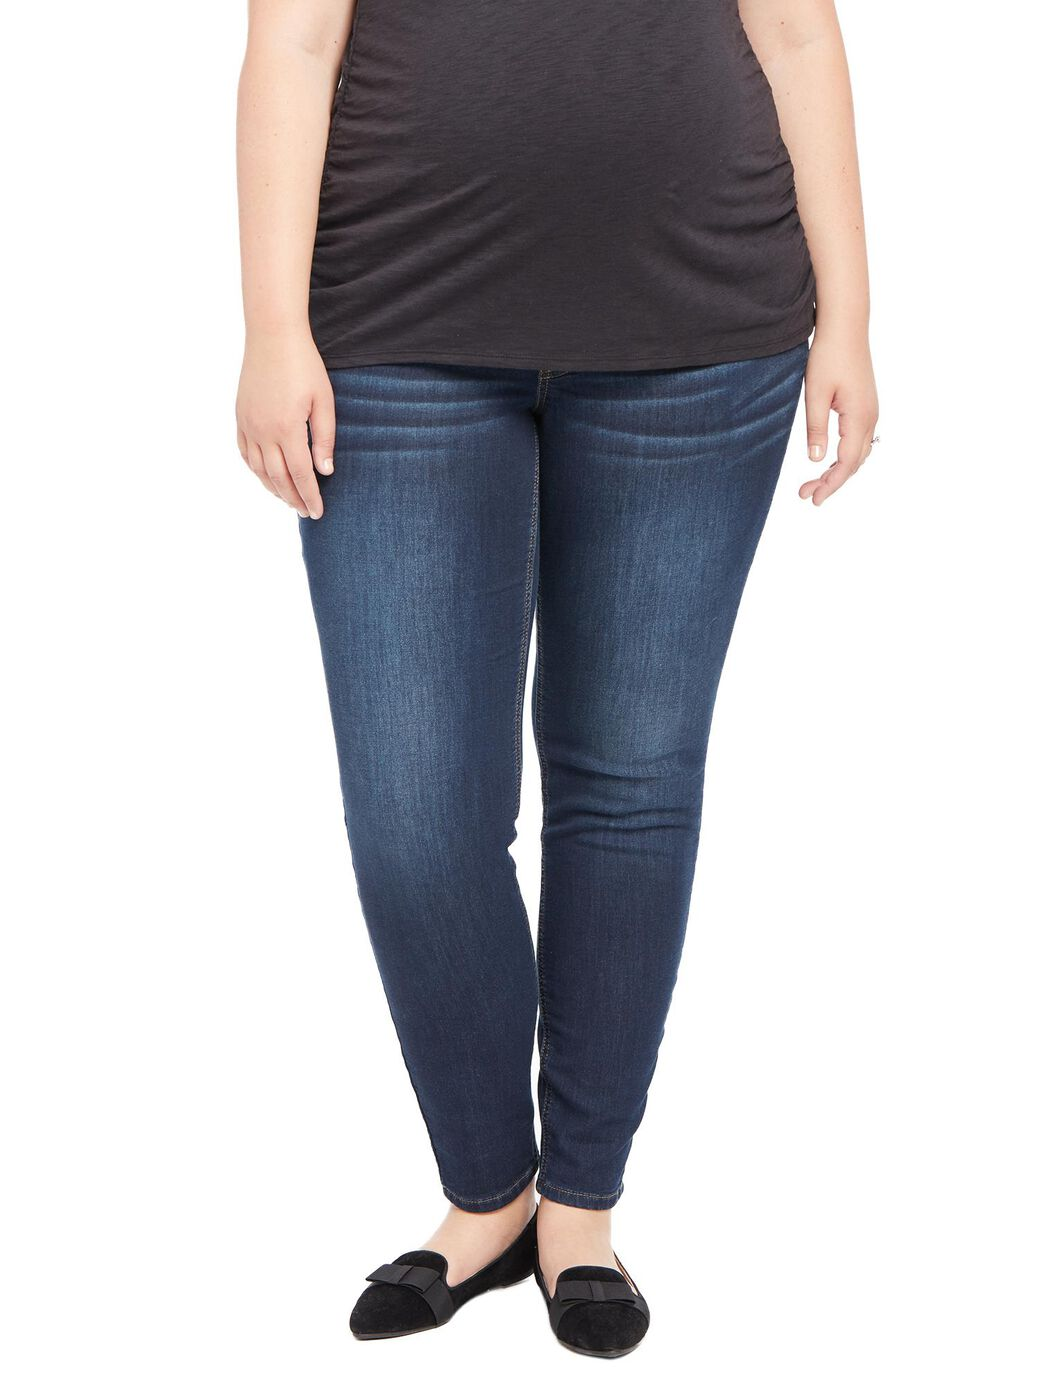 Plus Size Secret Fit Belly Jegging Maternity Jeans at Motherhood Maternity in Victor, NY | Tuggl